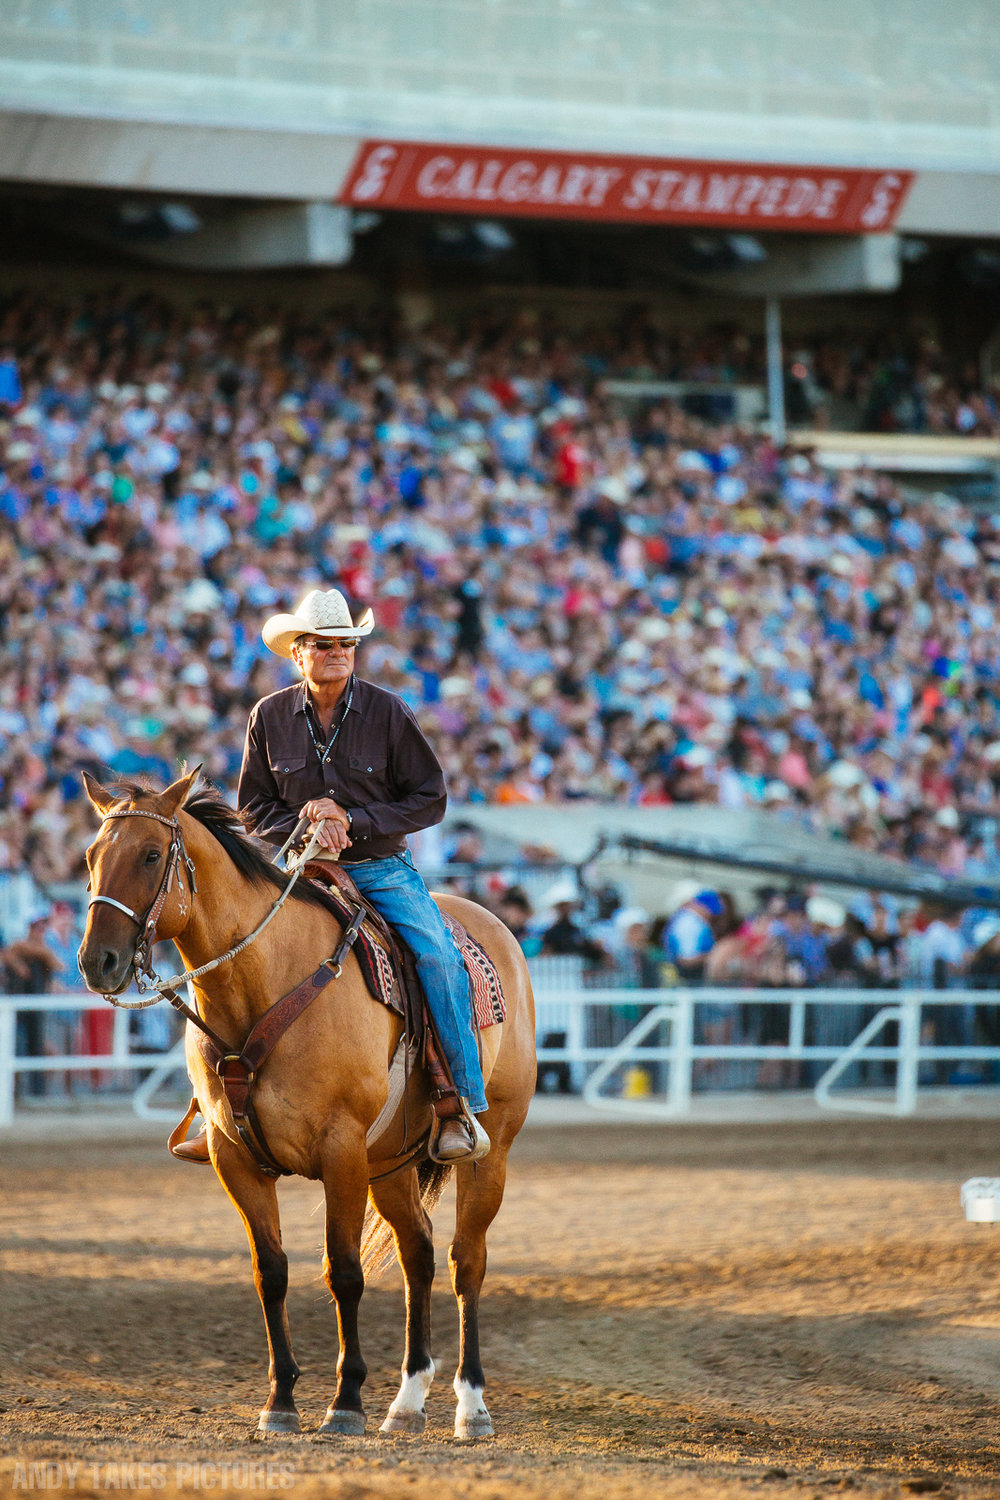 A photograph of a cowboy on a horse on the chuckwagon track at the Calgary Stampede. Behind him is a packed audience. He is standing in a sunbeam.